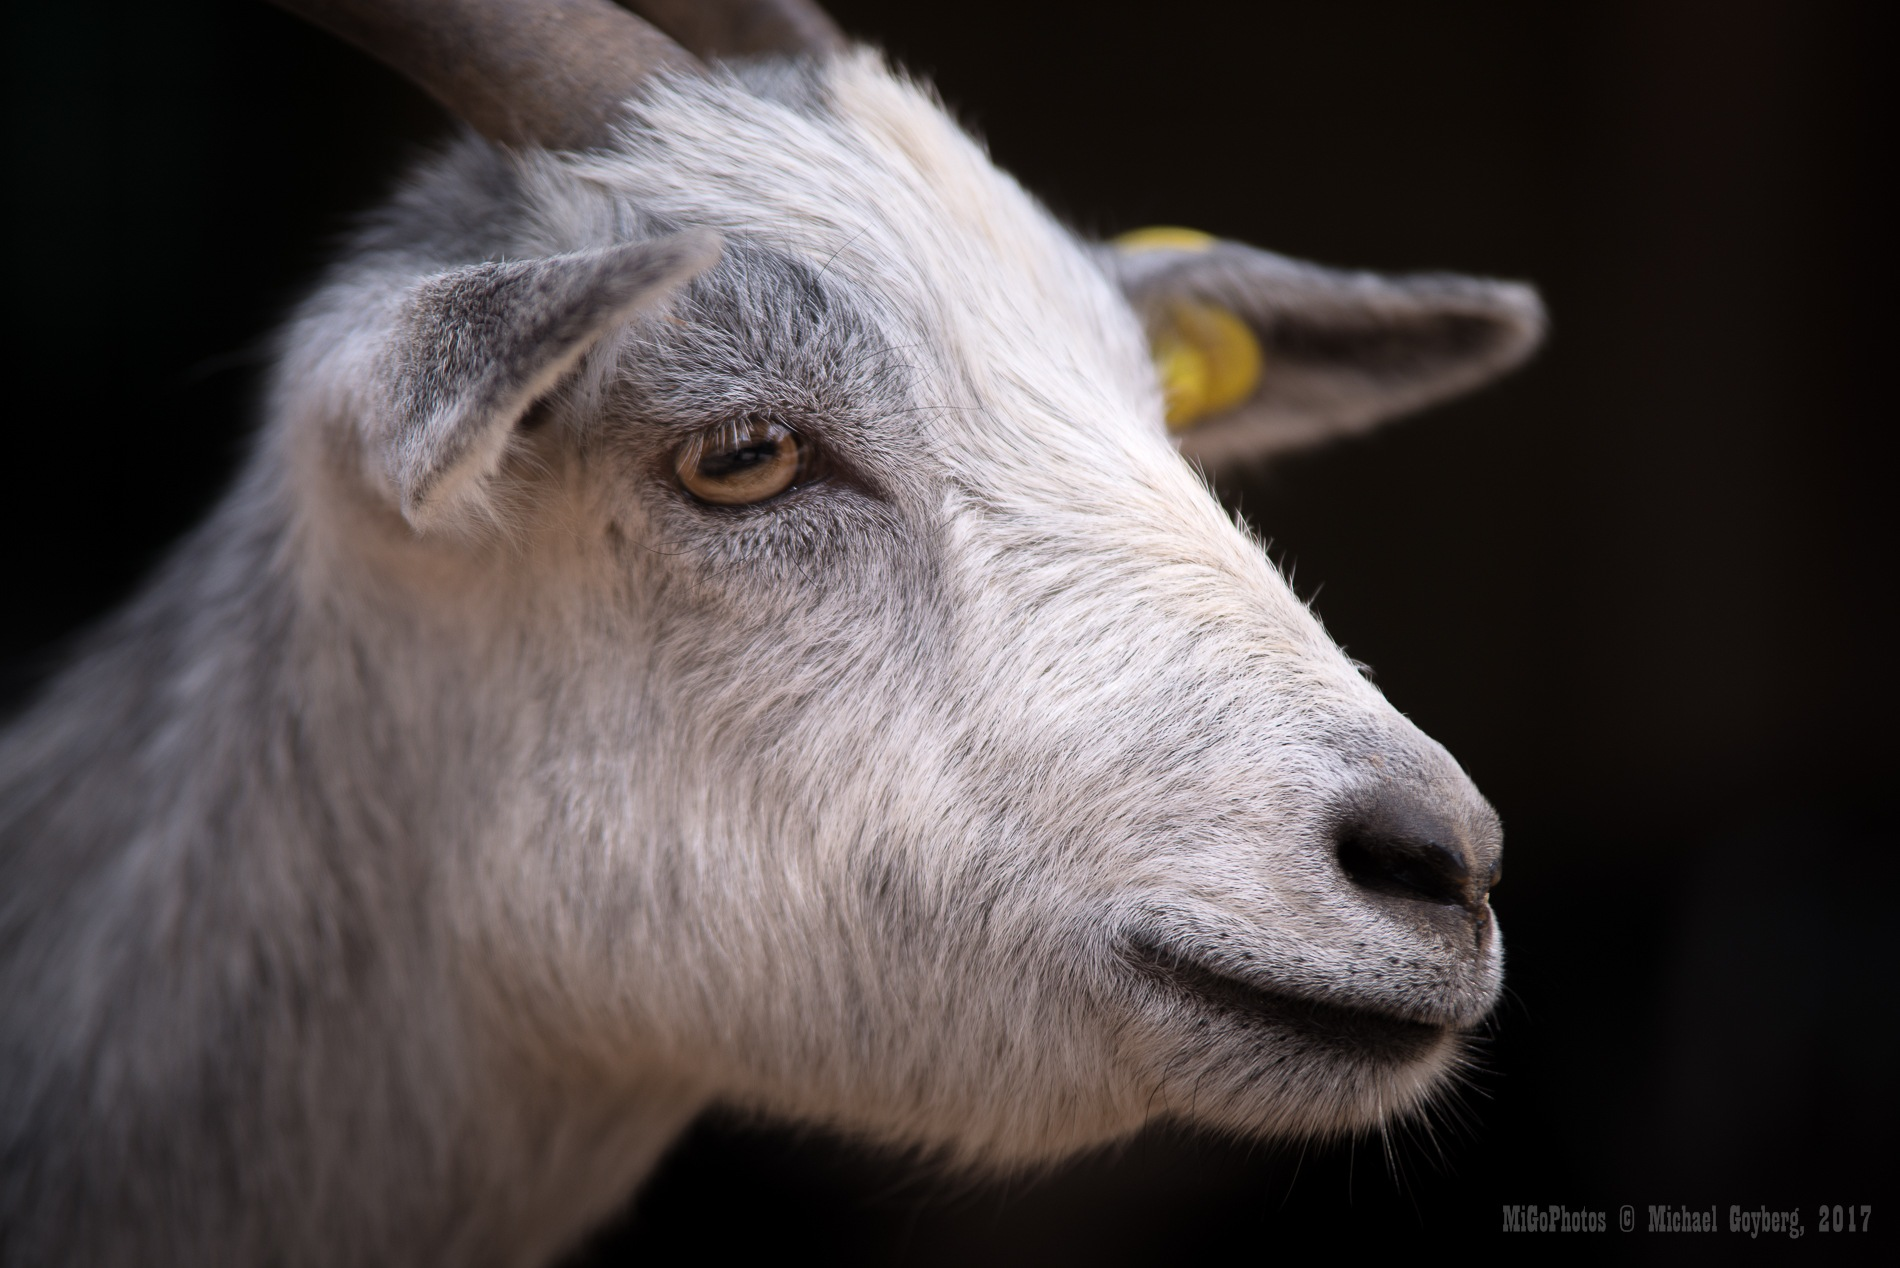 Portrait of a Goat by Michael Goyberg